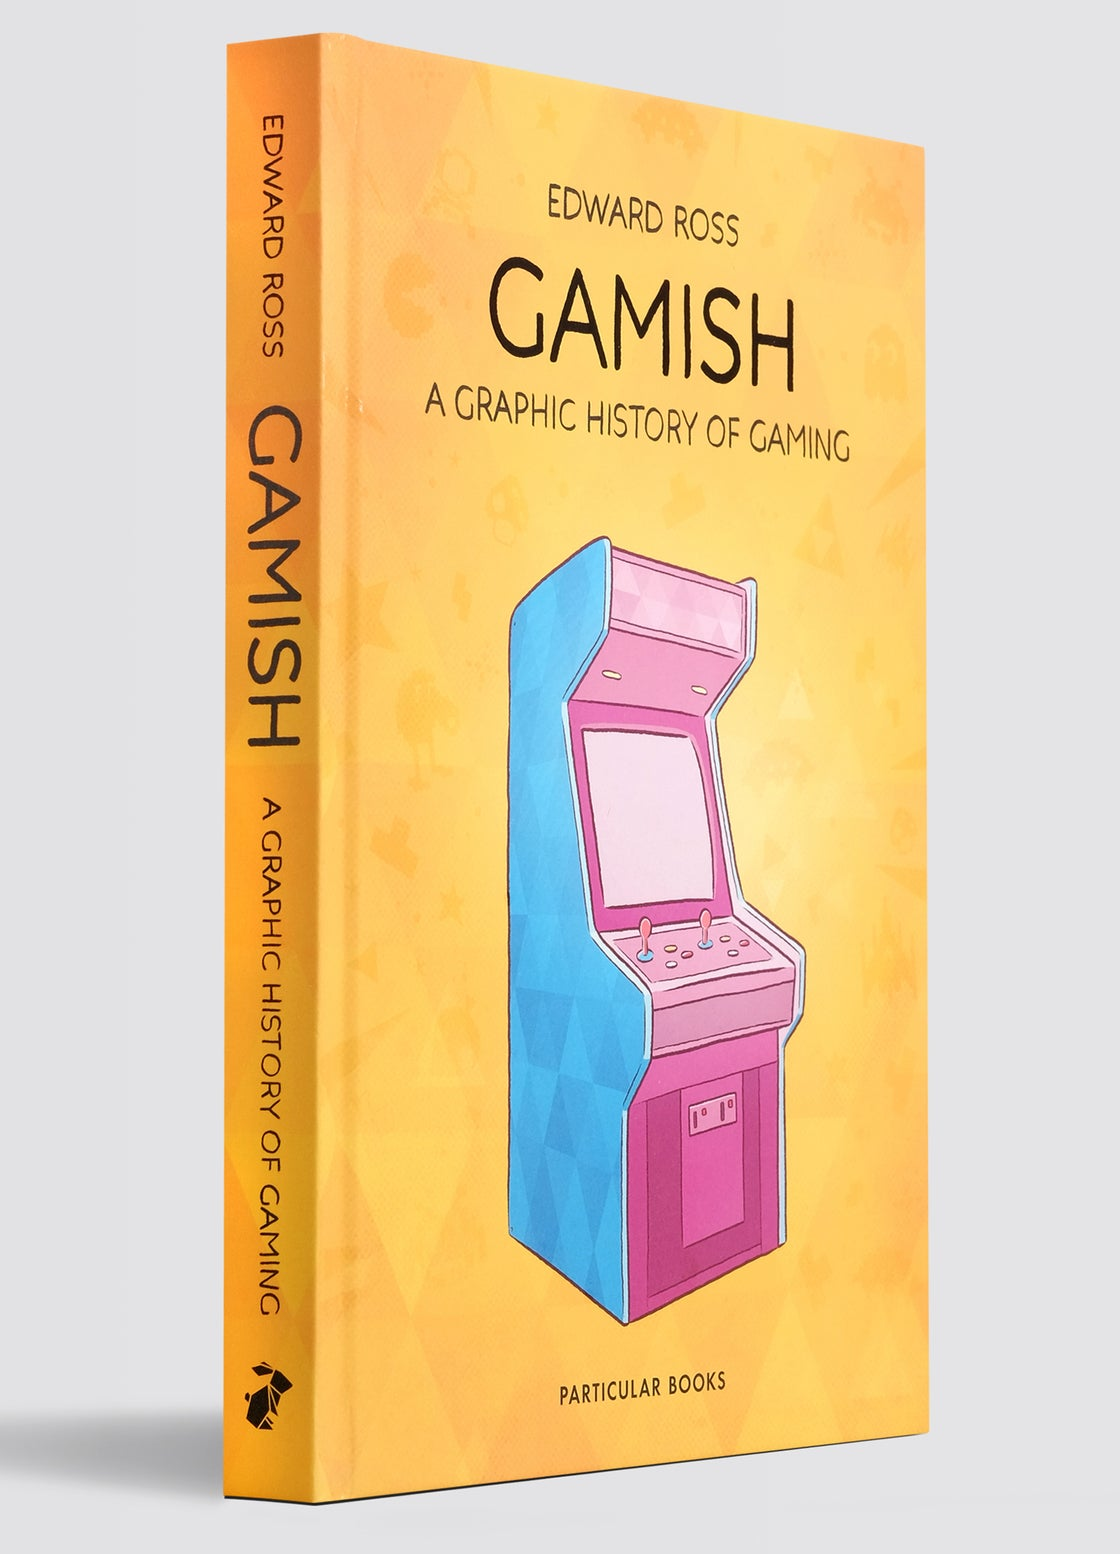 Image of Gamish - A Graphic History of Gaming